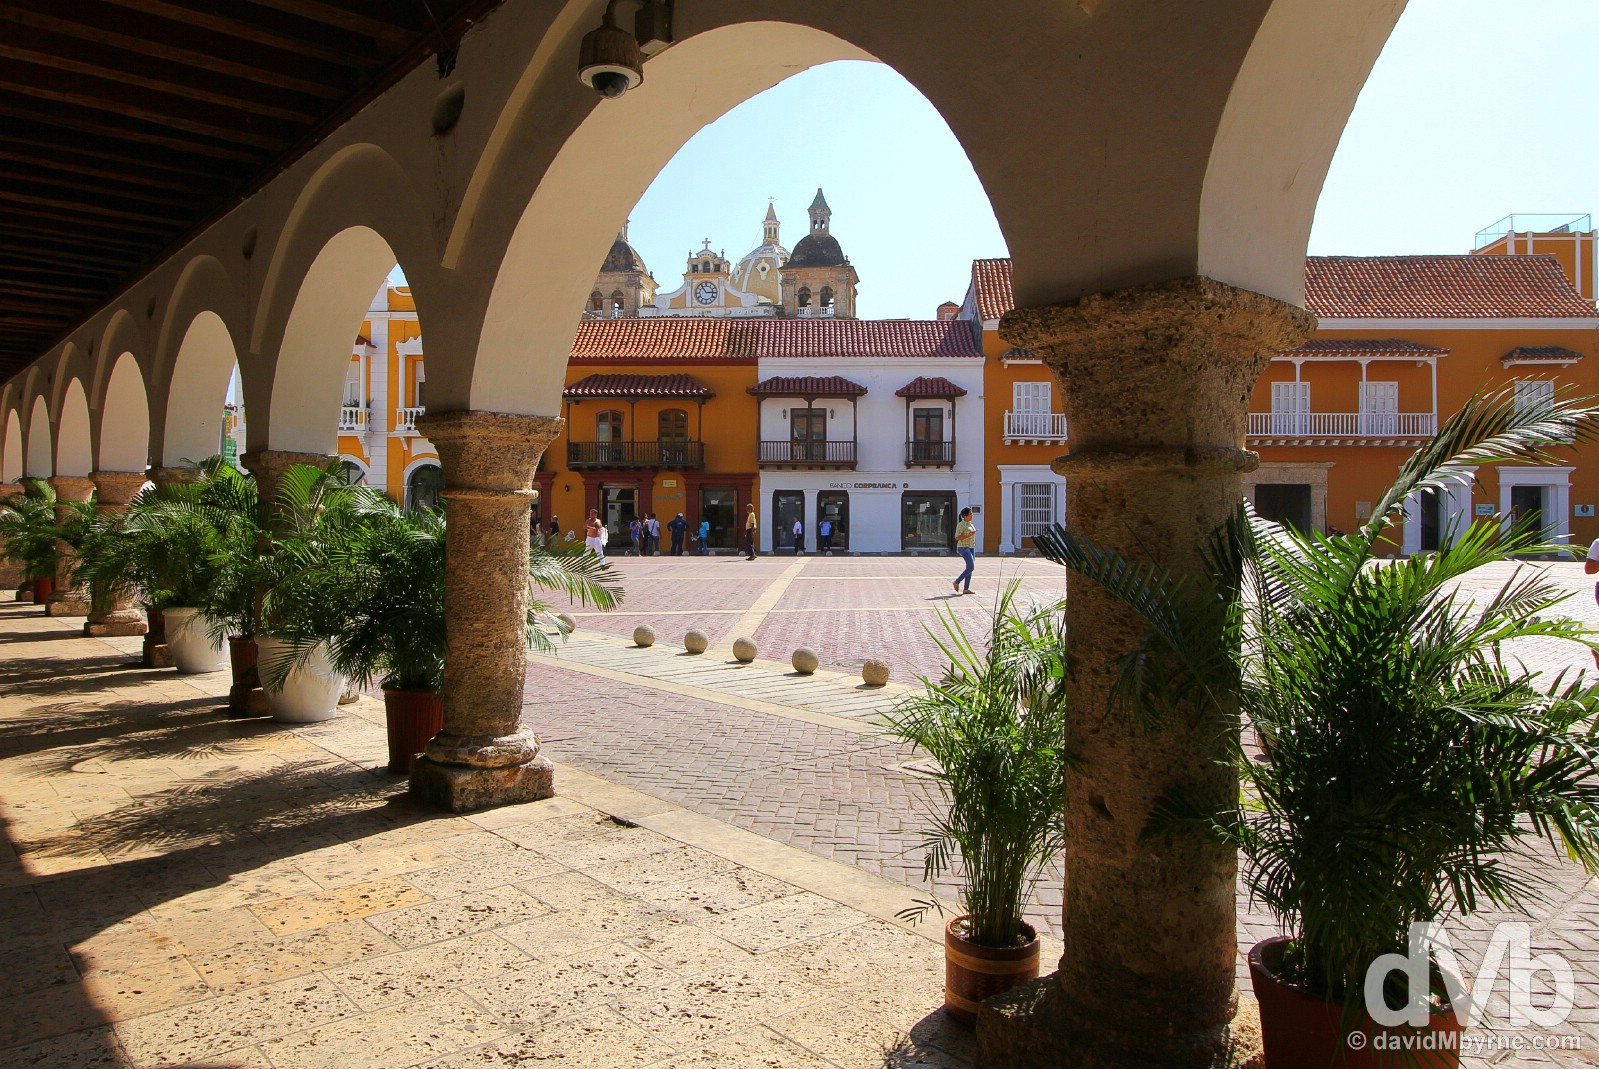 Plaza de la Aduana in Old Town Cartagena, Colombia. June 25, 2015.